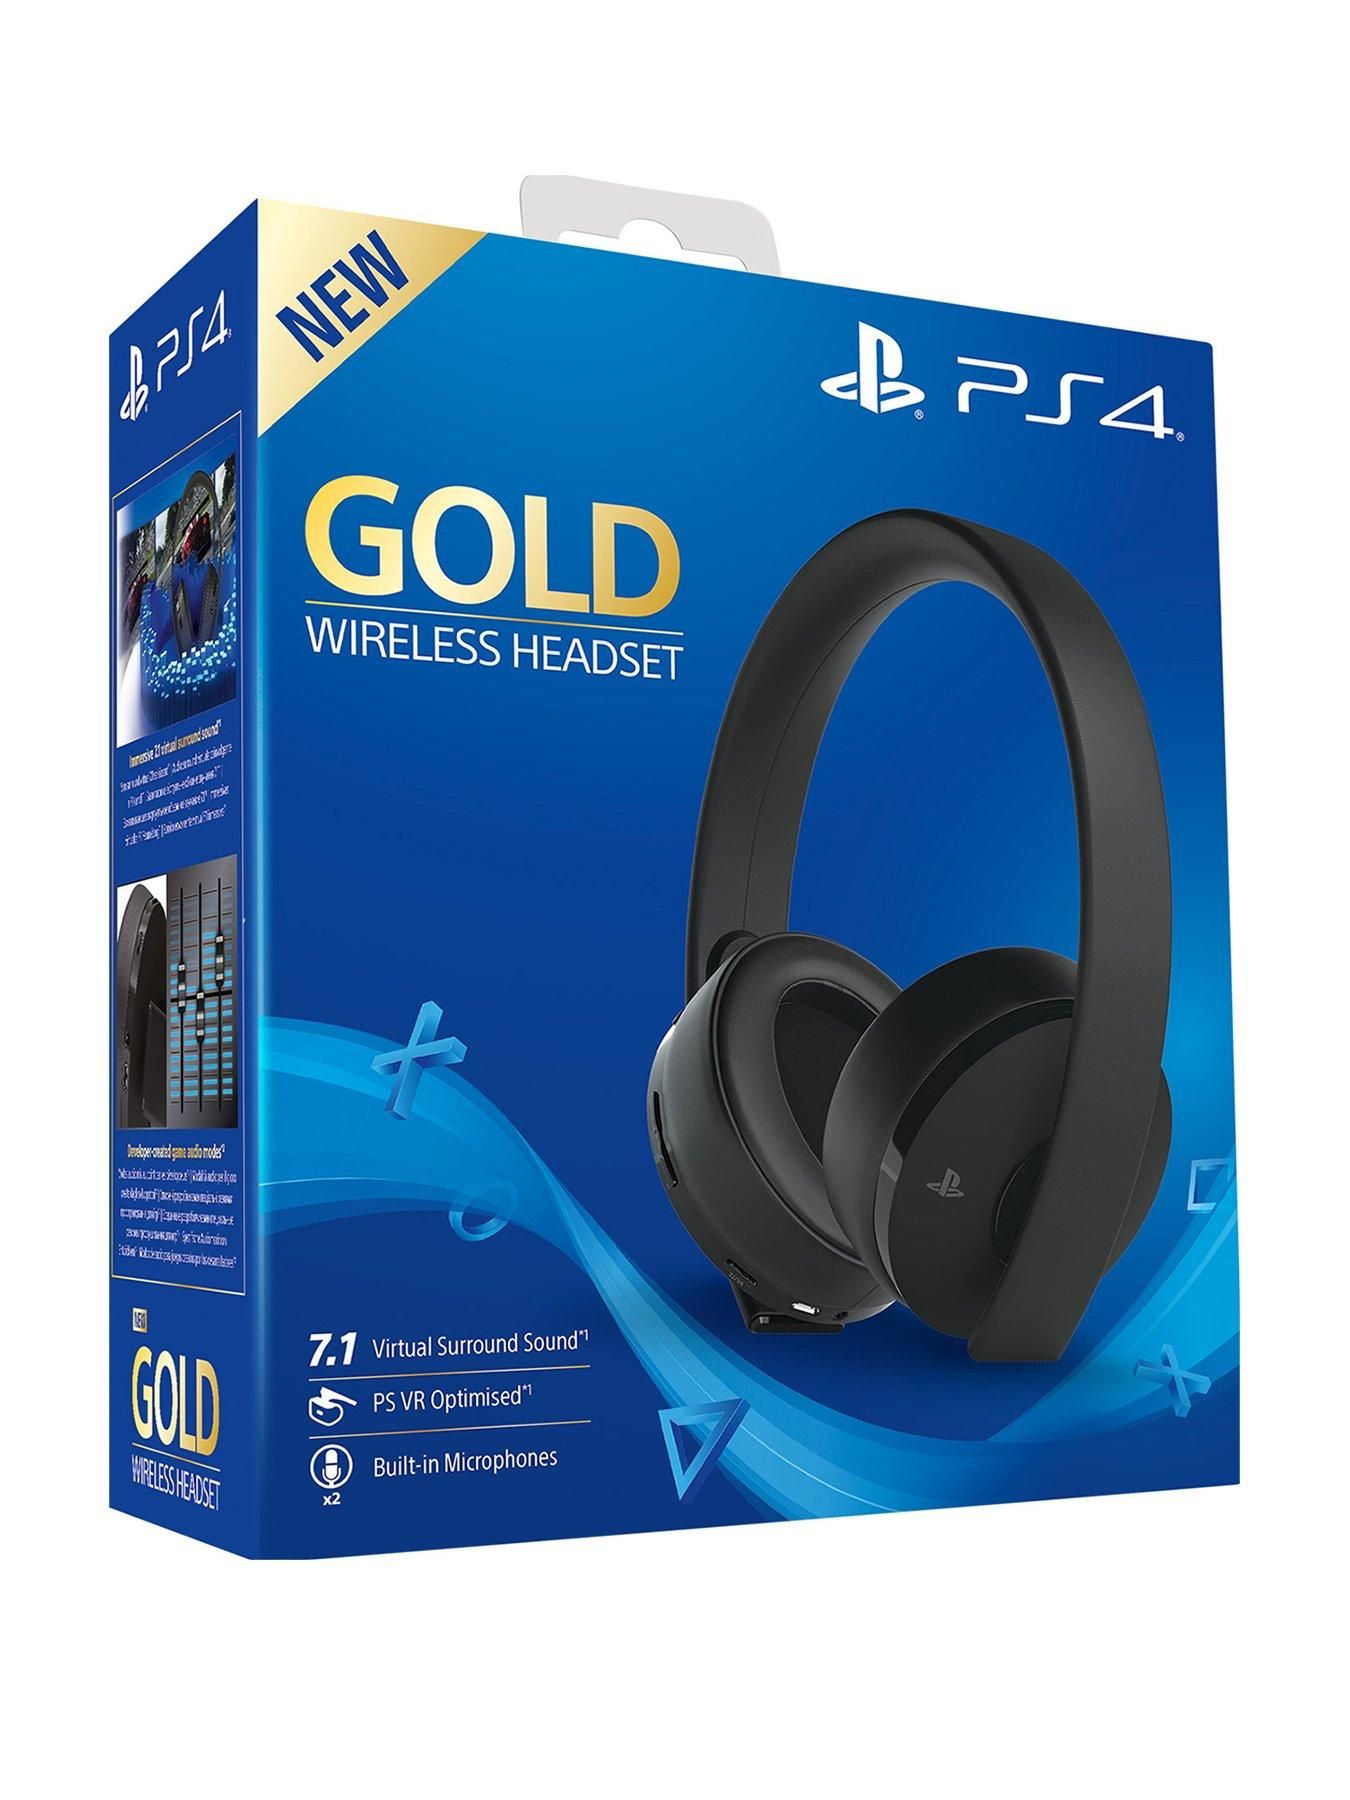 Official Playstation 4 Gold Wireless Headset Ps4 Wireless Headset Wireless Headset Headset